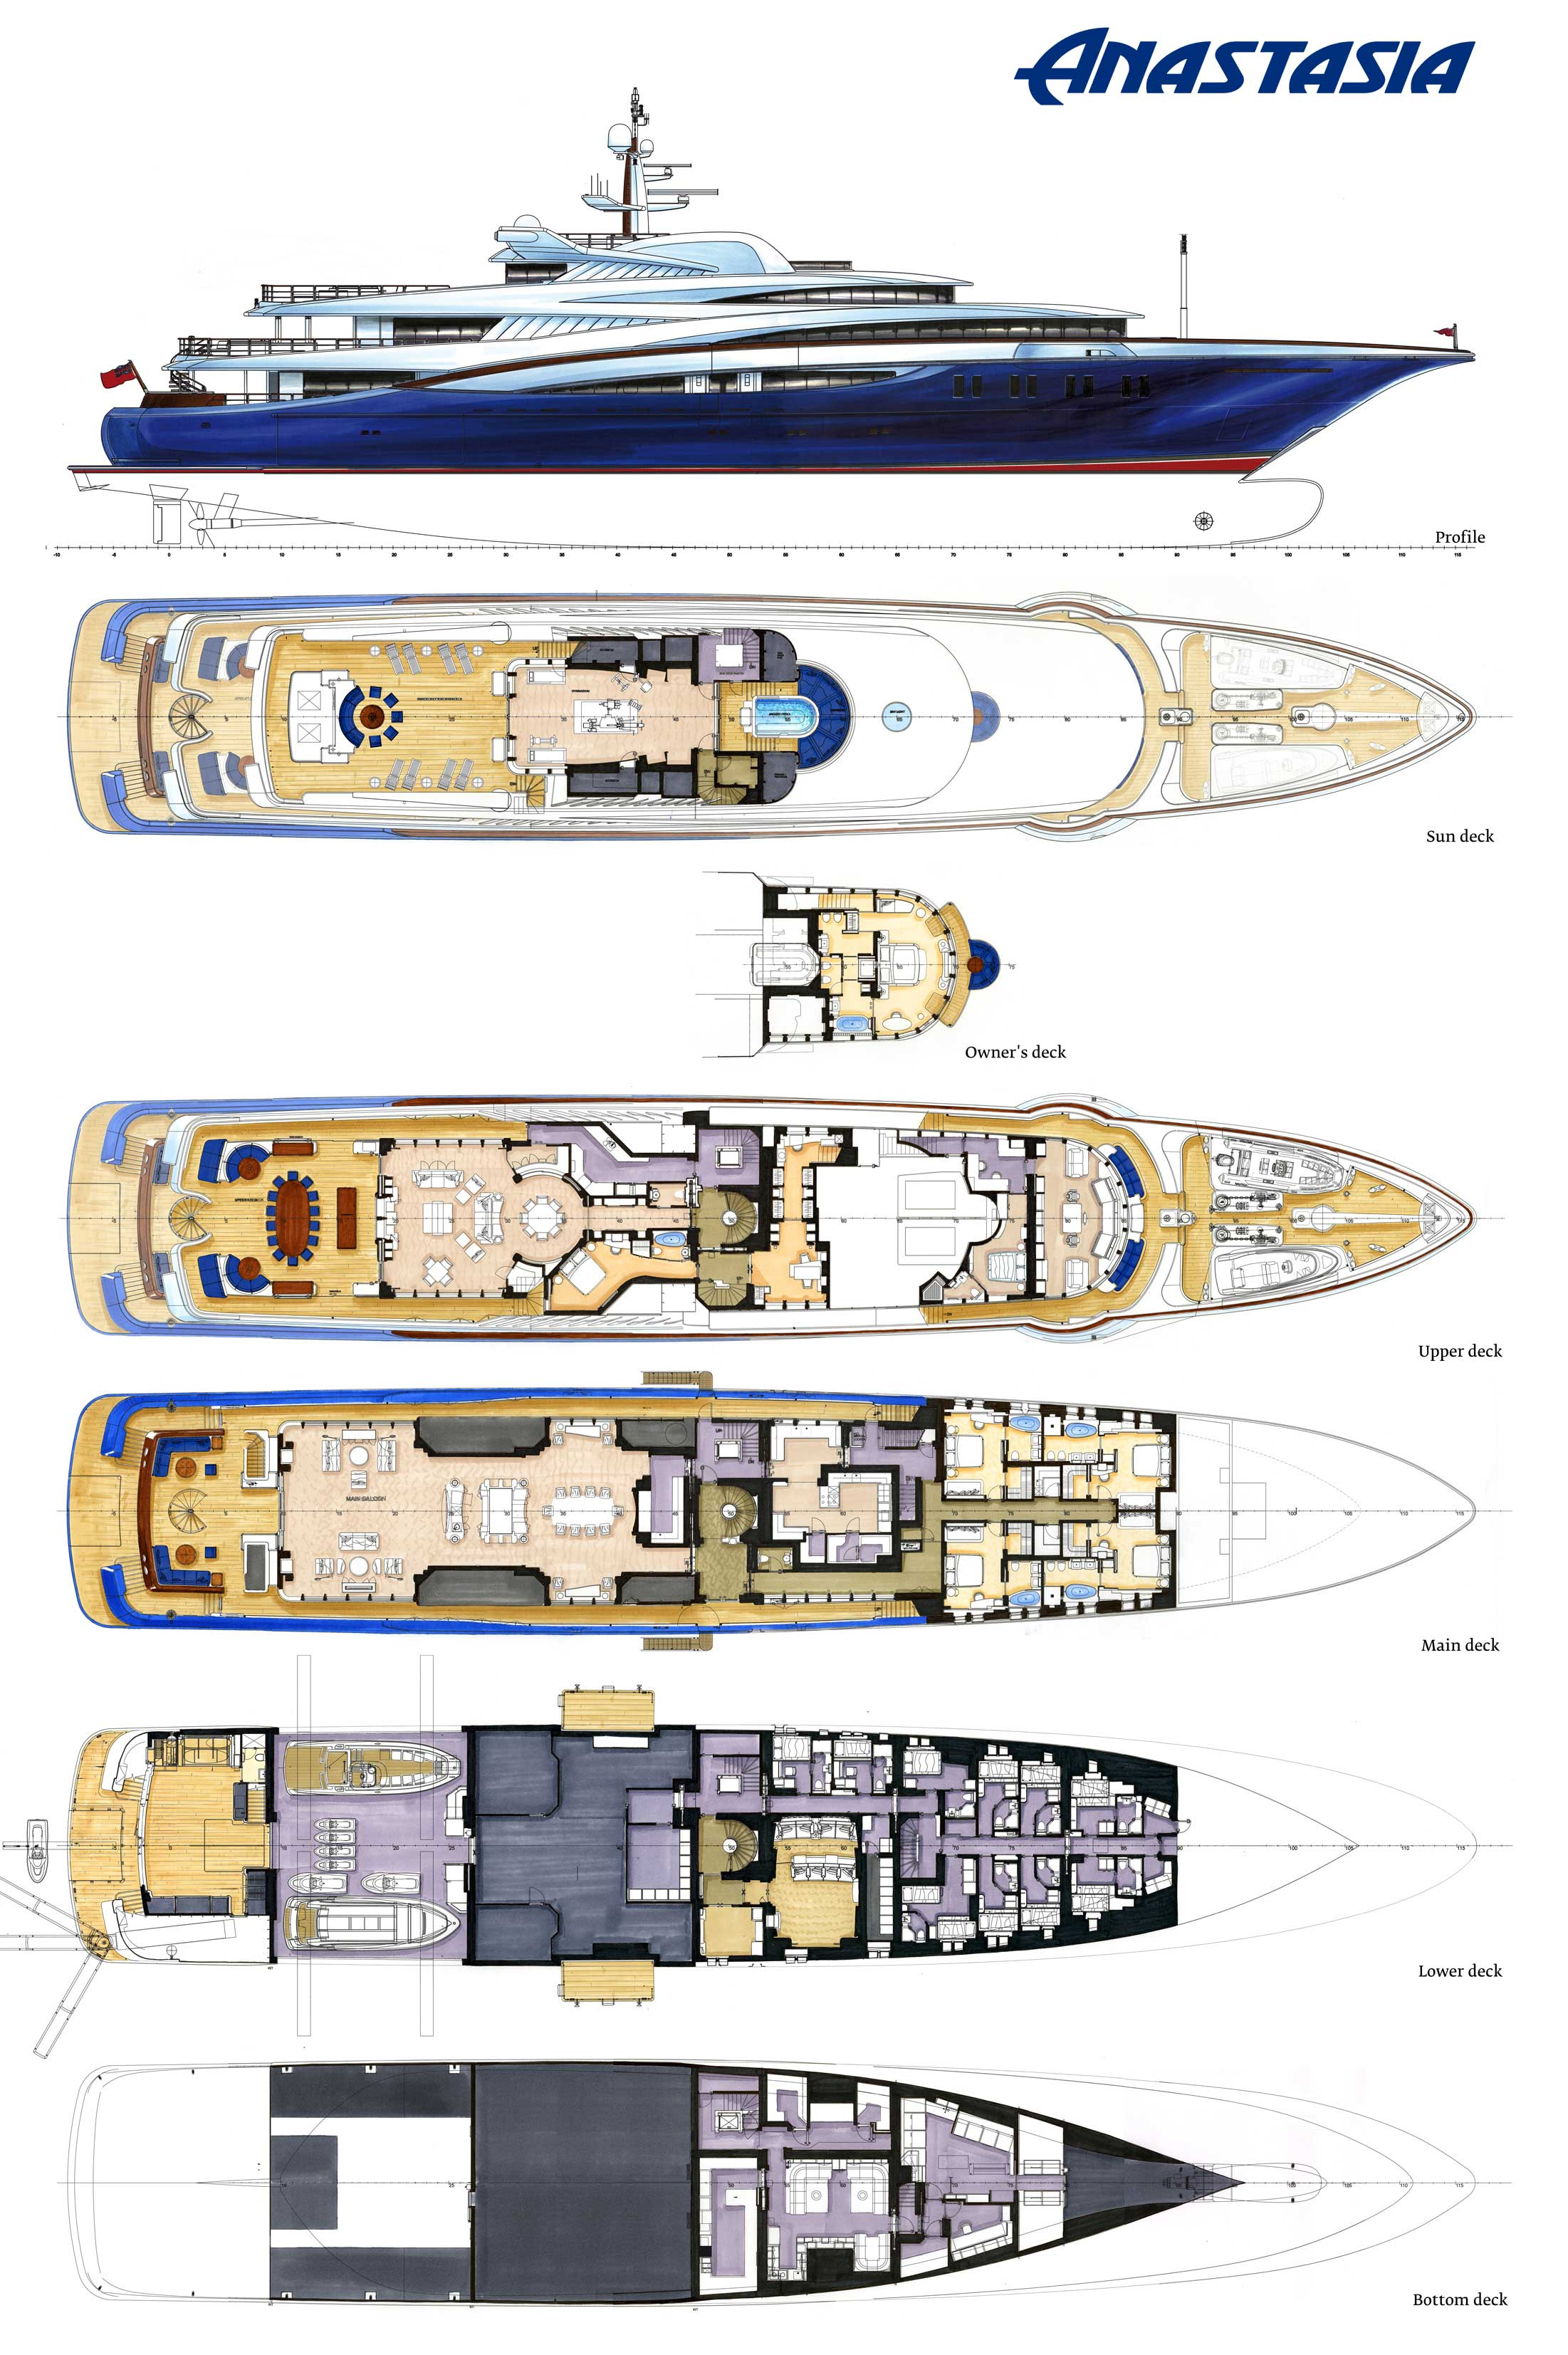 Layout Plans Image Gallery – Luxury Yacht Browser | by CHARTERWORLD Superyacht Charter